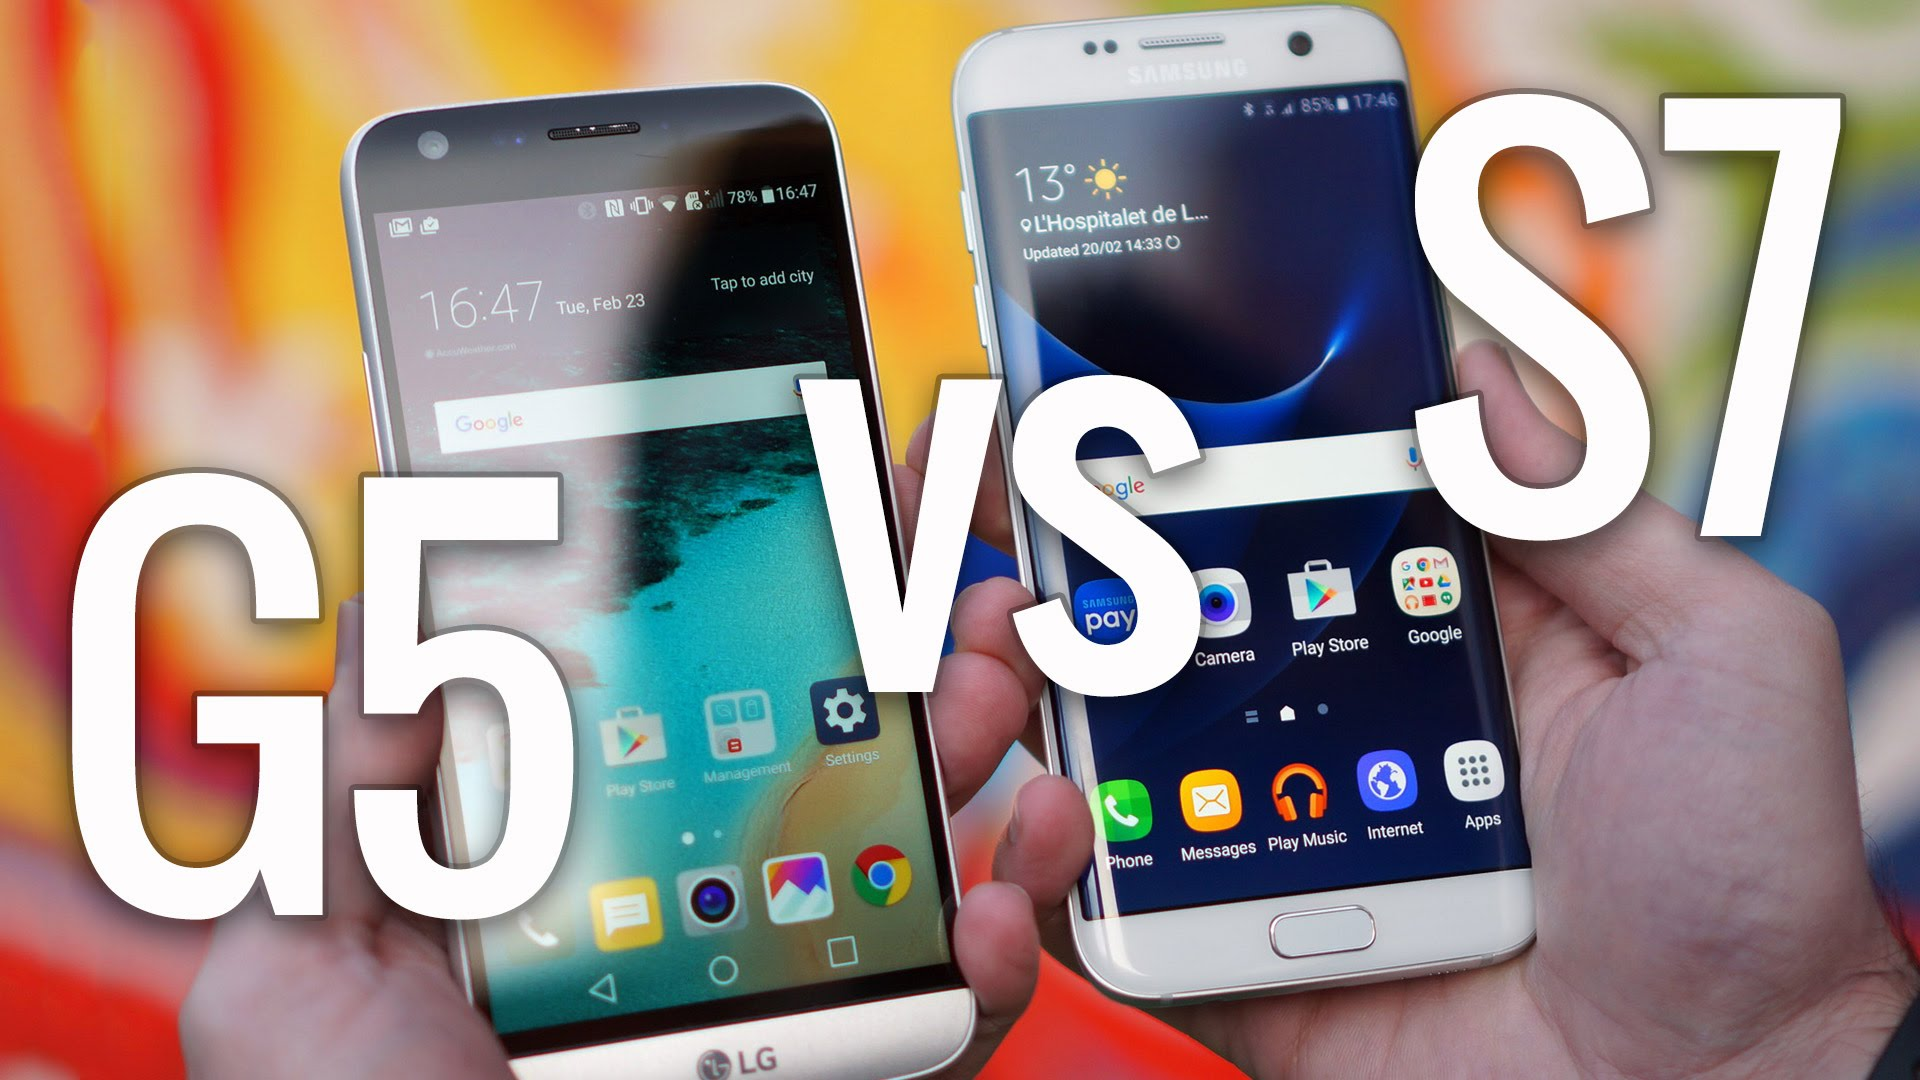 Samsung Galaxy Smartphone vs LG G-Series Smartphone: The Battle between the New Galaxy S7 and the LG G5